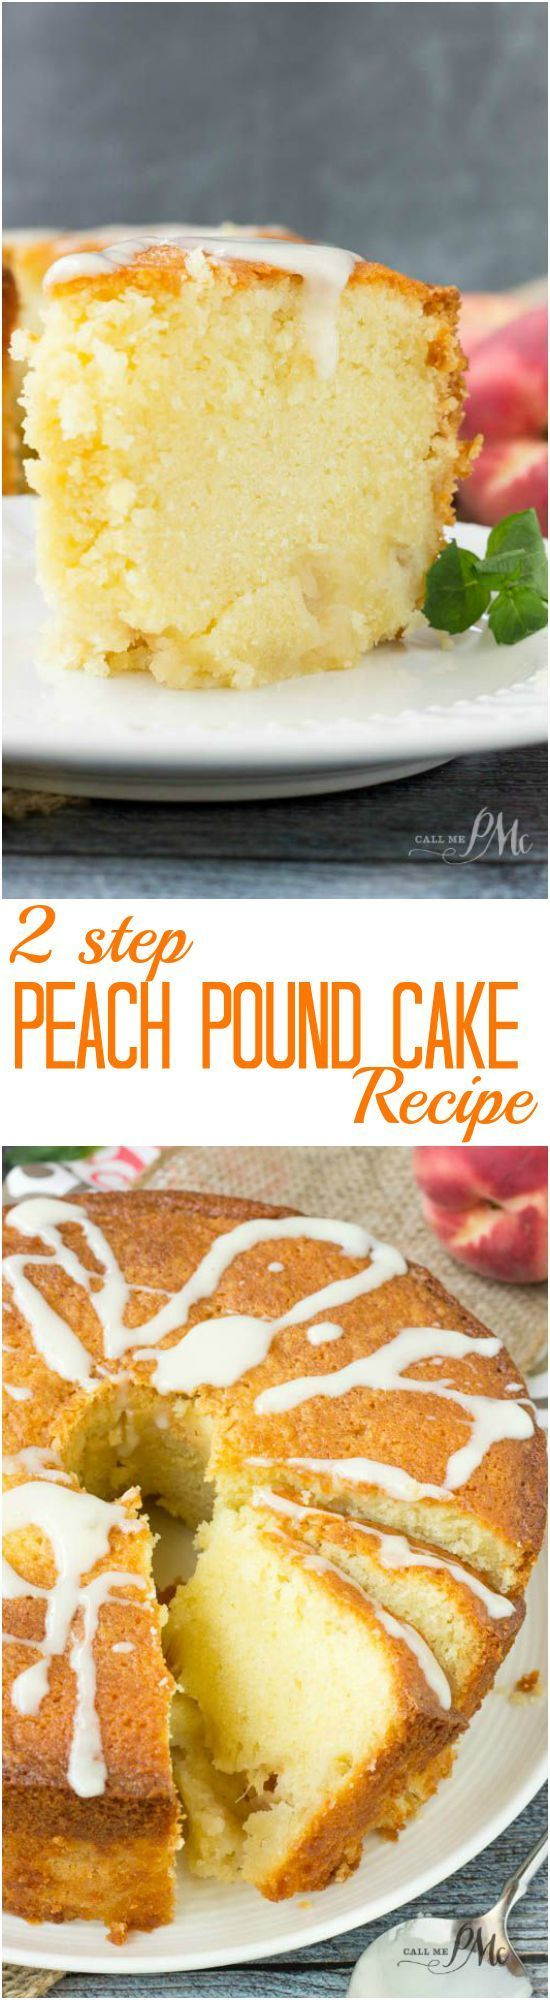 2 Step Peach Pound Cake Recipe #dan330 http://livedan330.com/2015/08/02/two-step-fresh-peach-pound-cake/